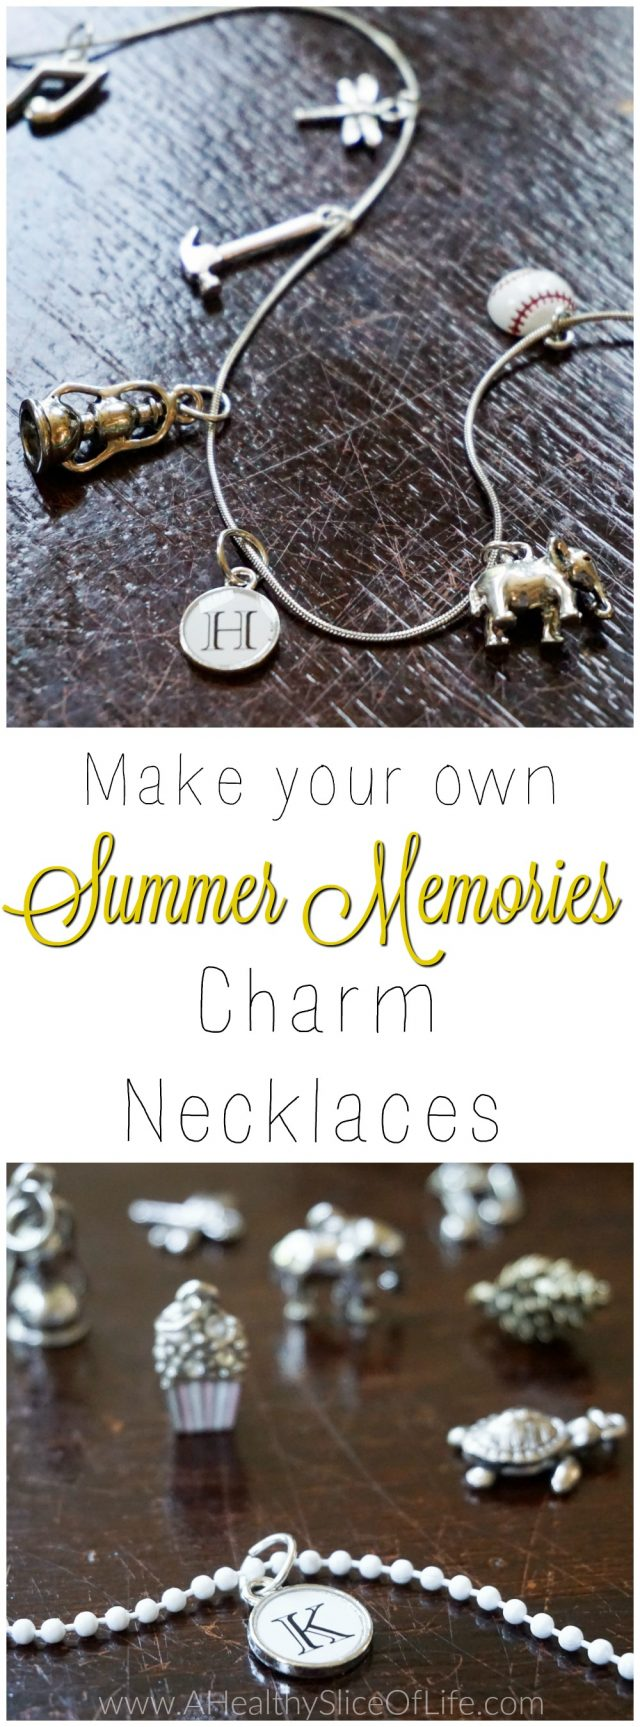 summer memory charm necklaces